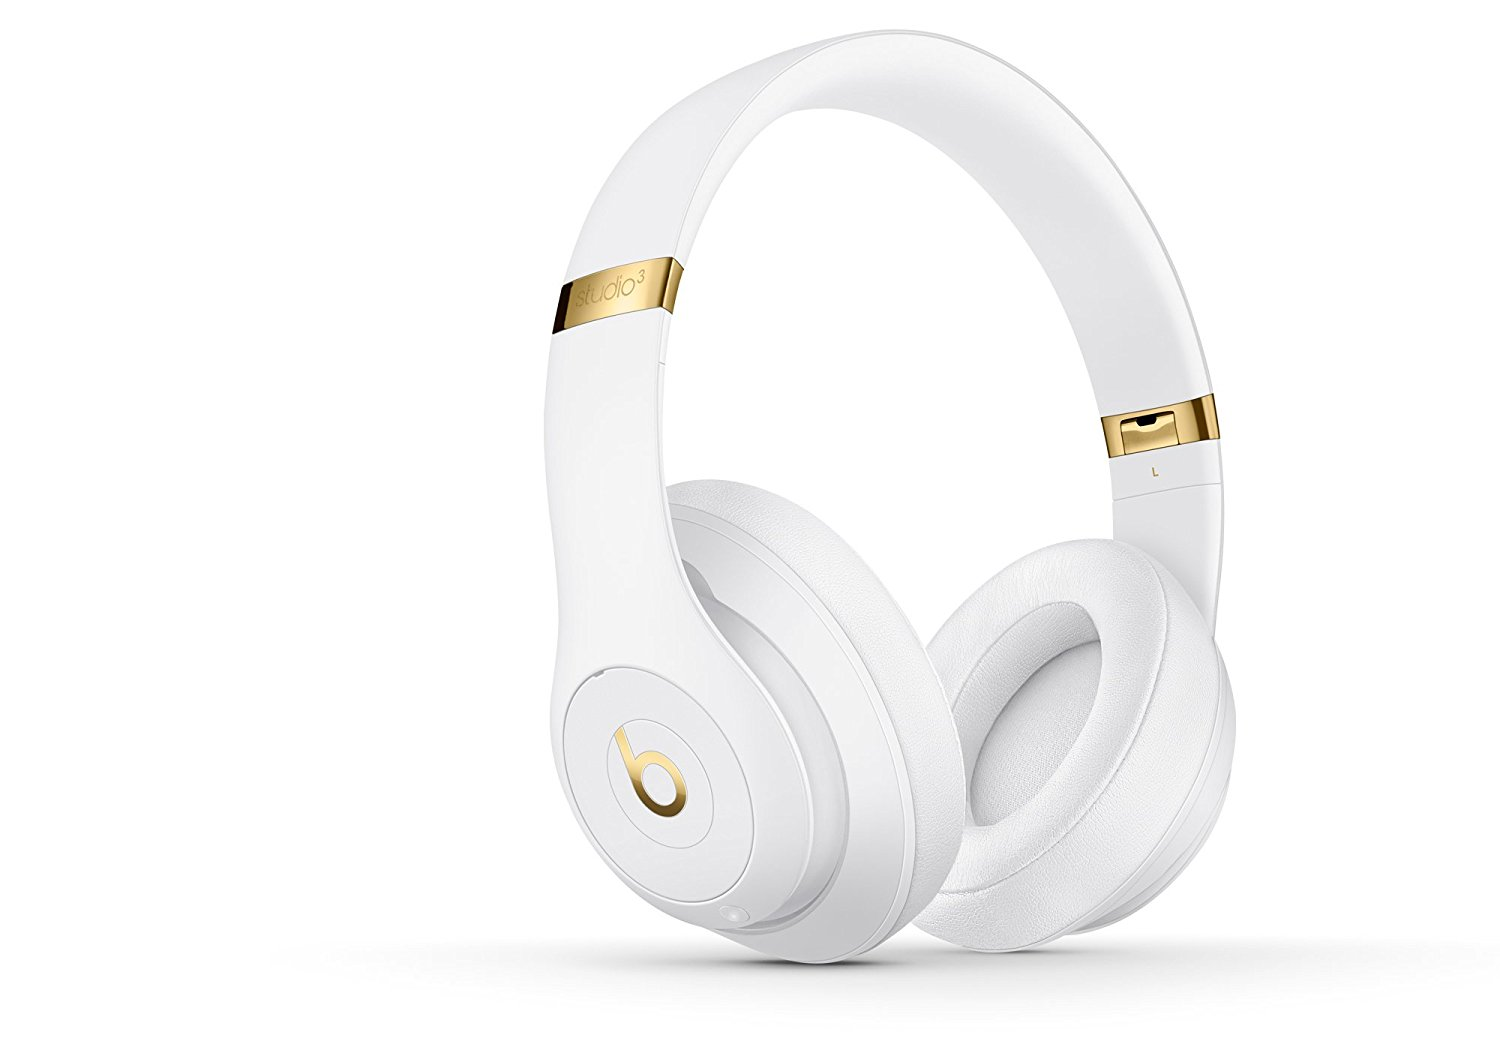 Best travel tech gifts: Beats Studio3 Wireless Headphones